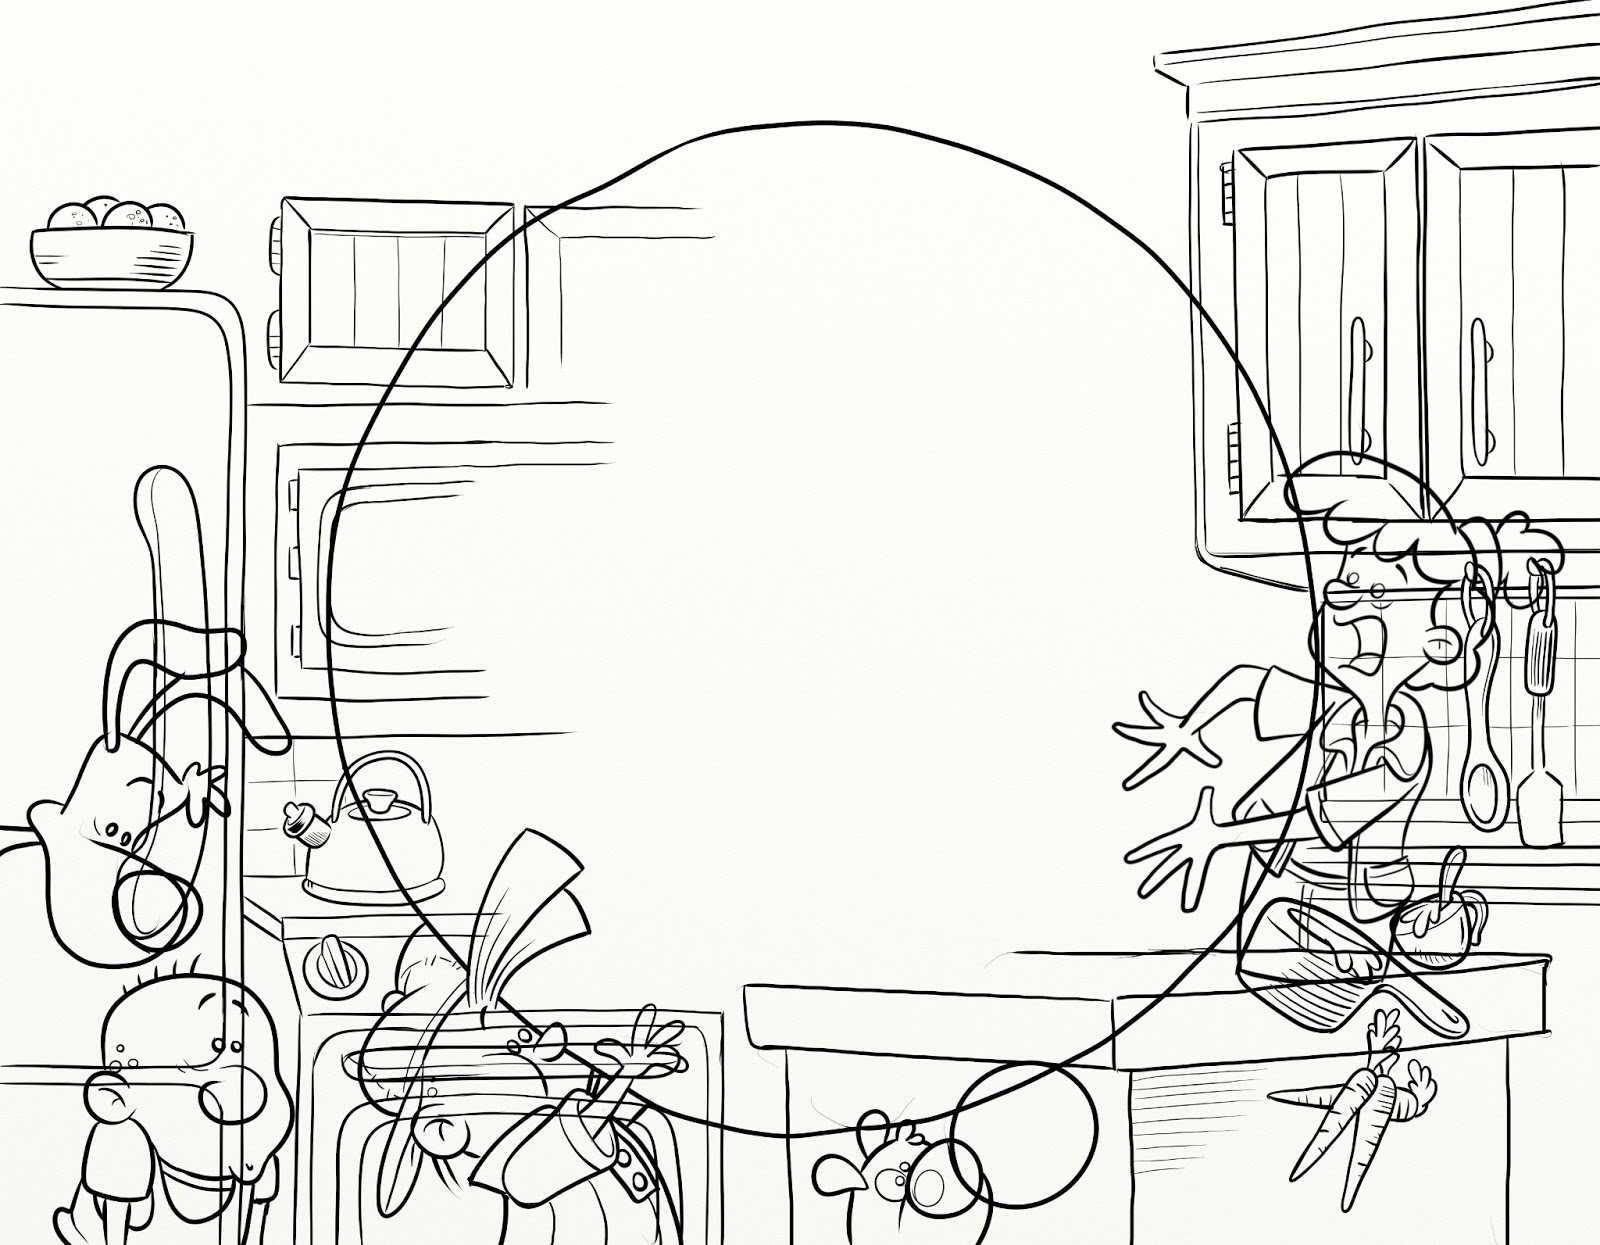 Note many background items were extended in more detail from the original pencil sketch doing this allows more control of placement and making adjustments